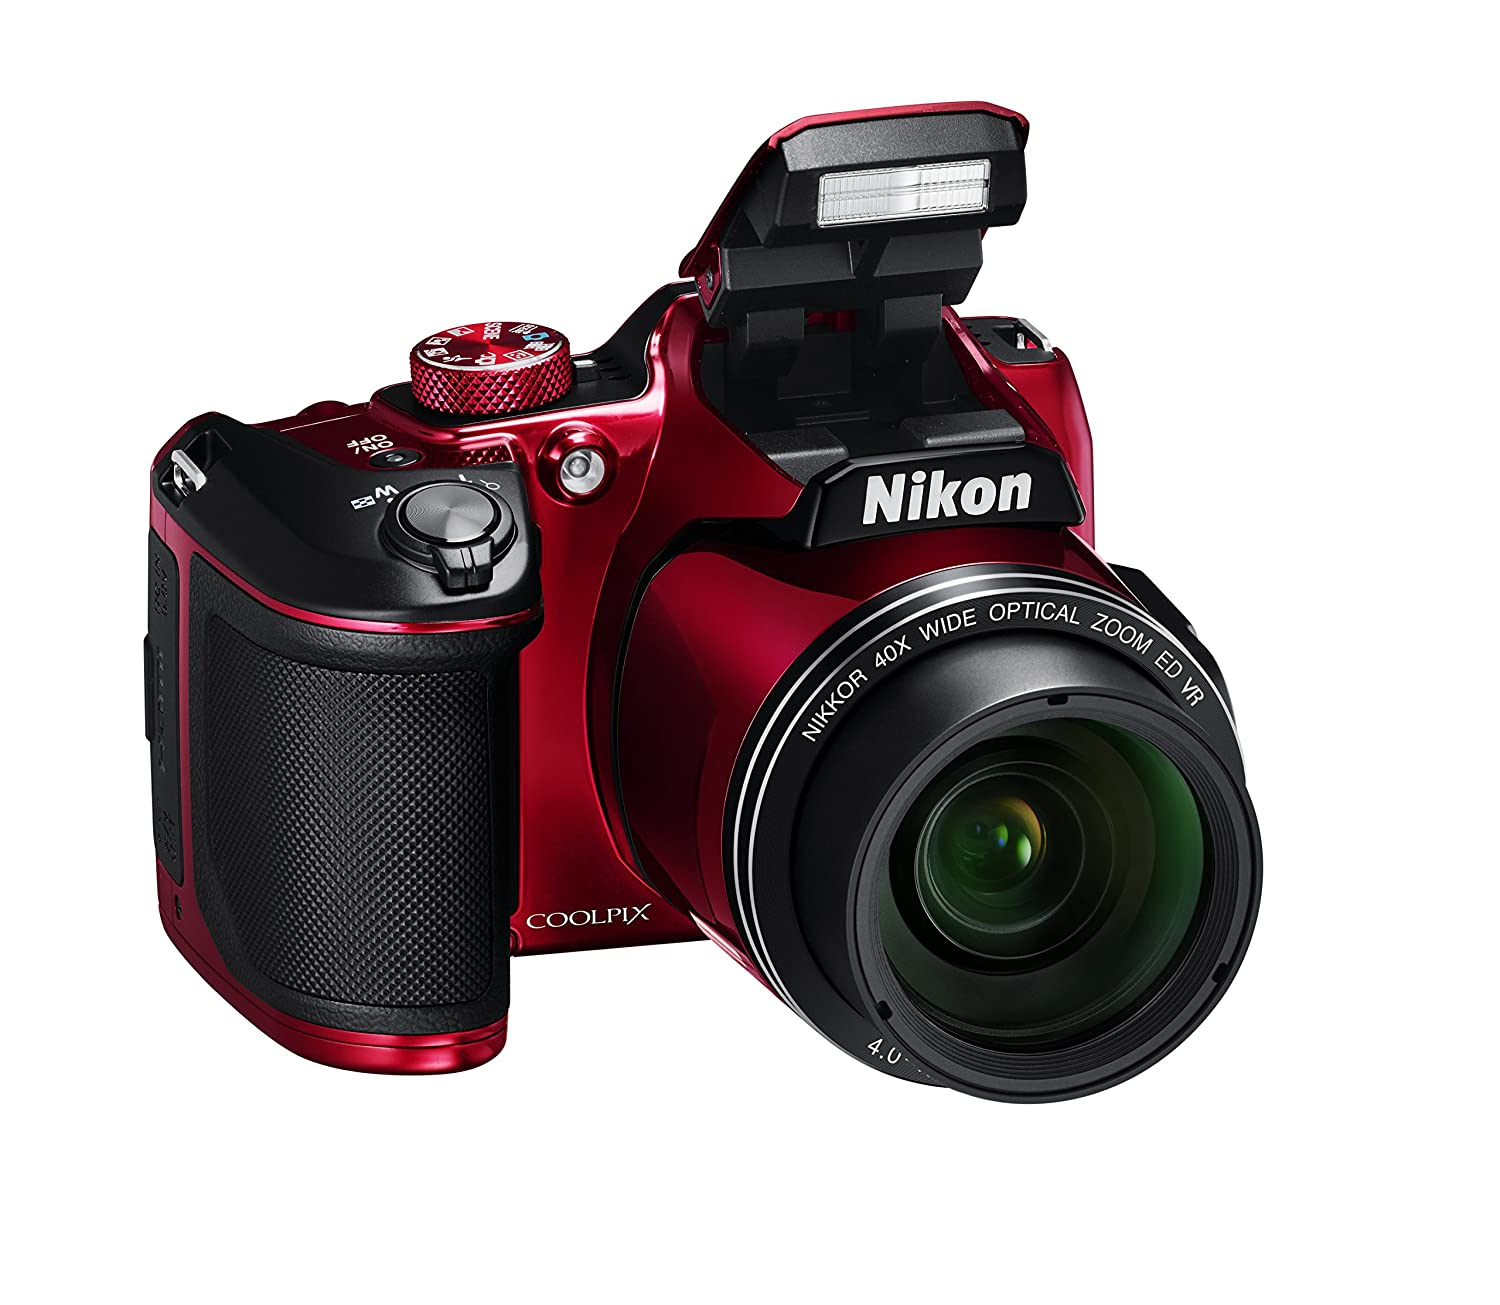 Nikon Coolpix B500 Fotocamera Digitale Compatta, 16 Megapixel, Zoom 40X, VR, LCD Inclinabile 3, Full HD, Bluetooth, Wi-Fi, Rosso